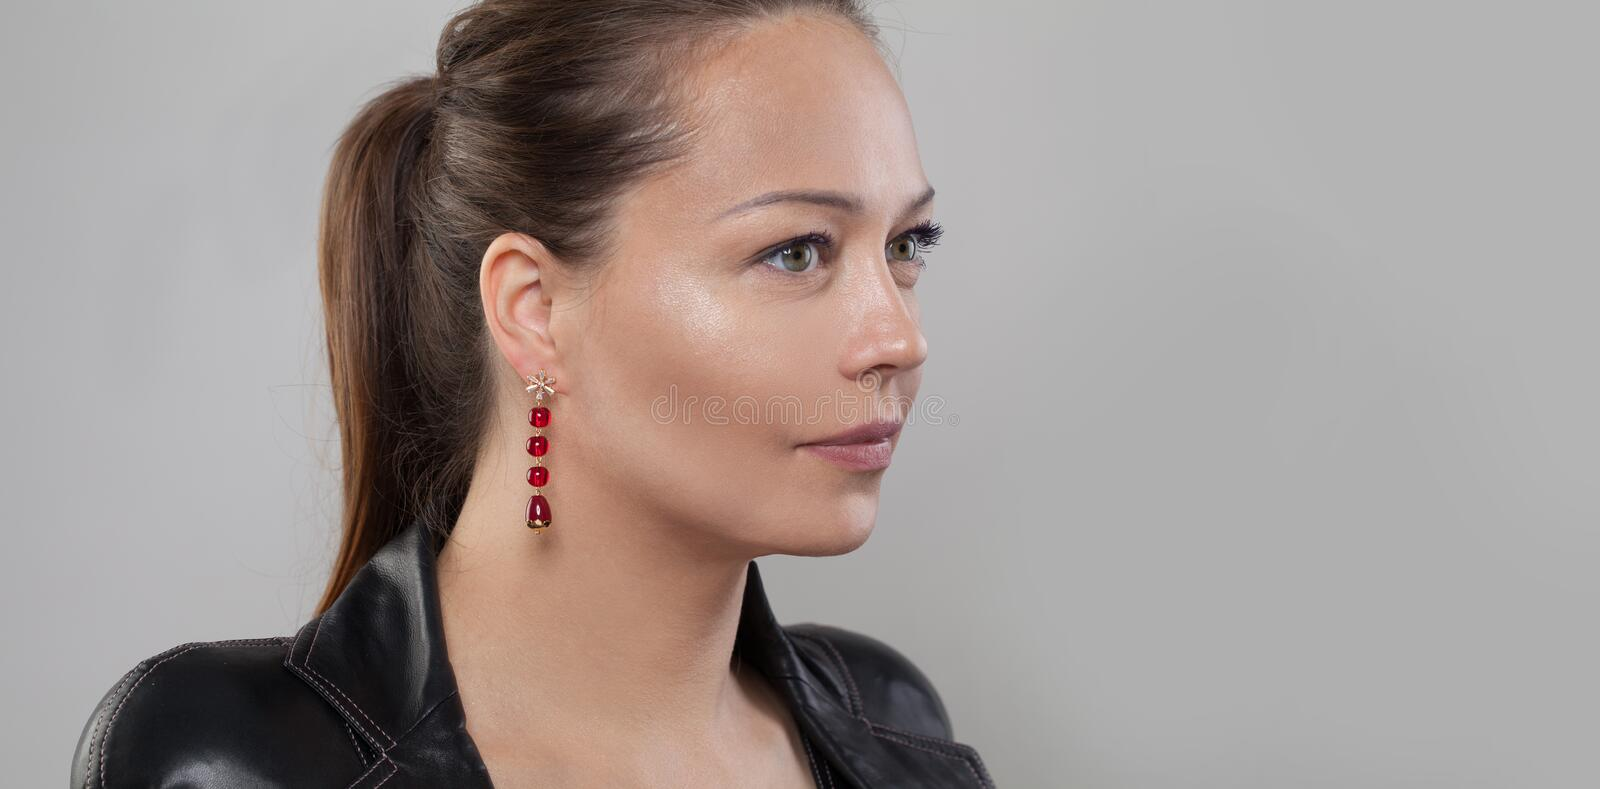 Natural beauty. Pretty face closeup. Healthy model with perfect natural clear skin. Profile.  stock images